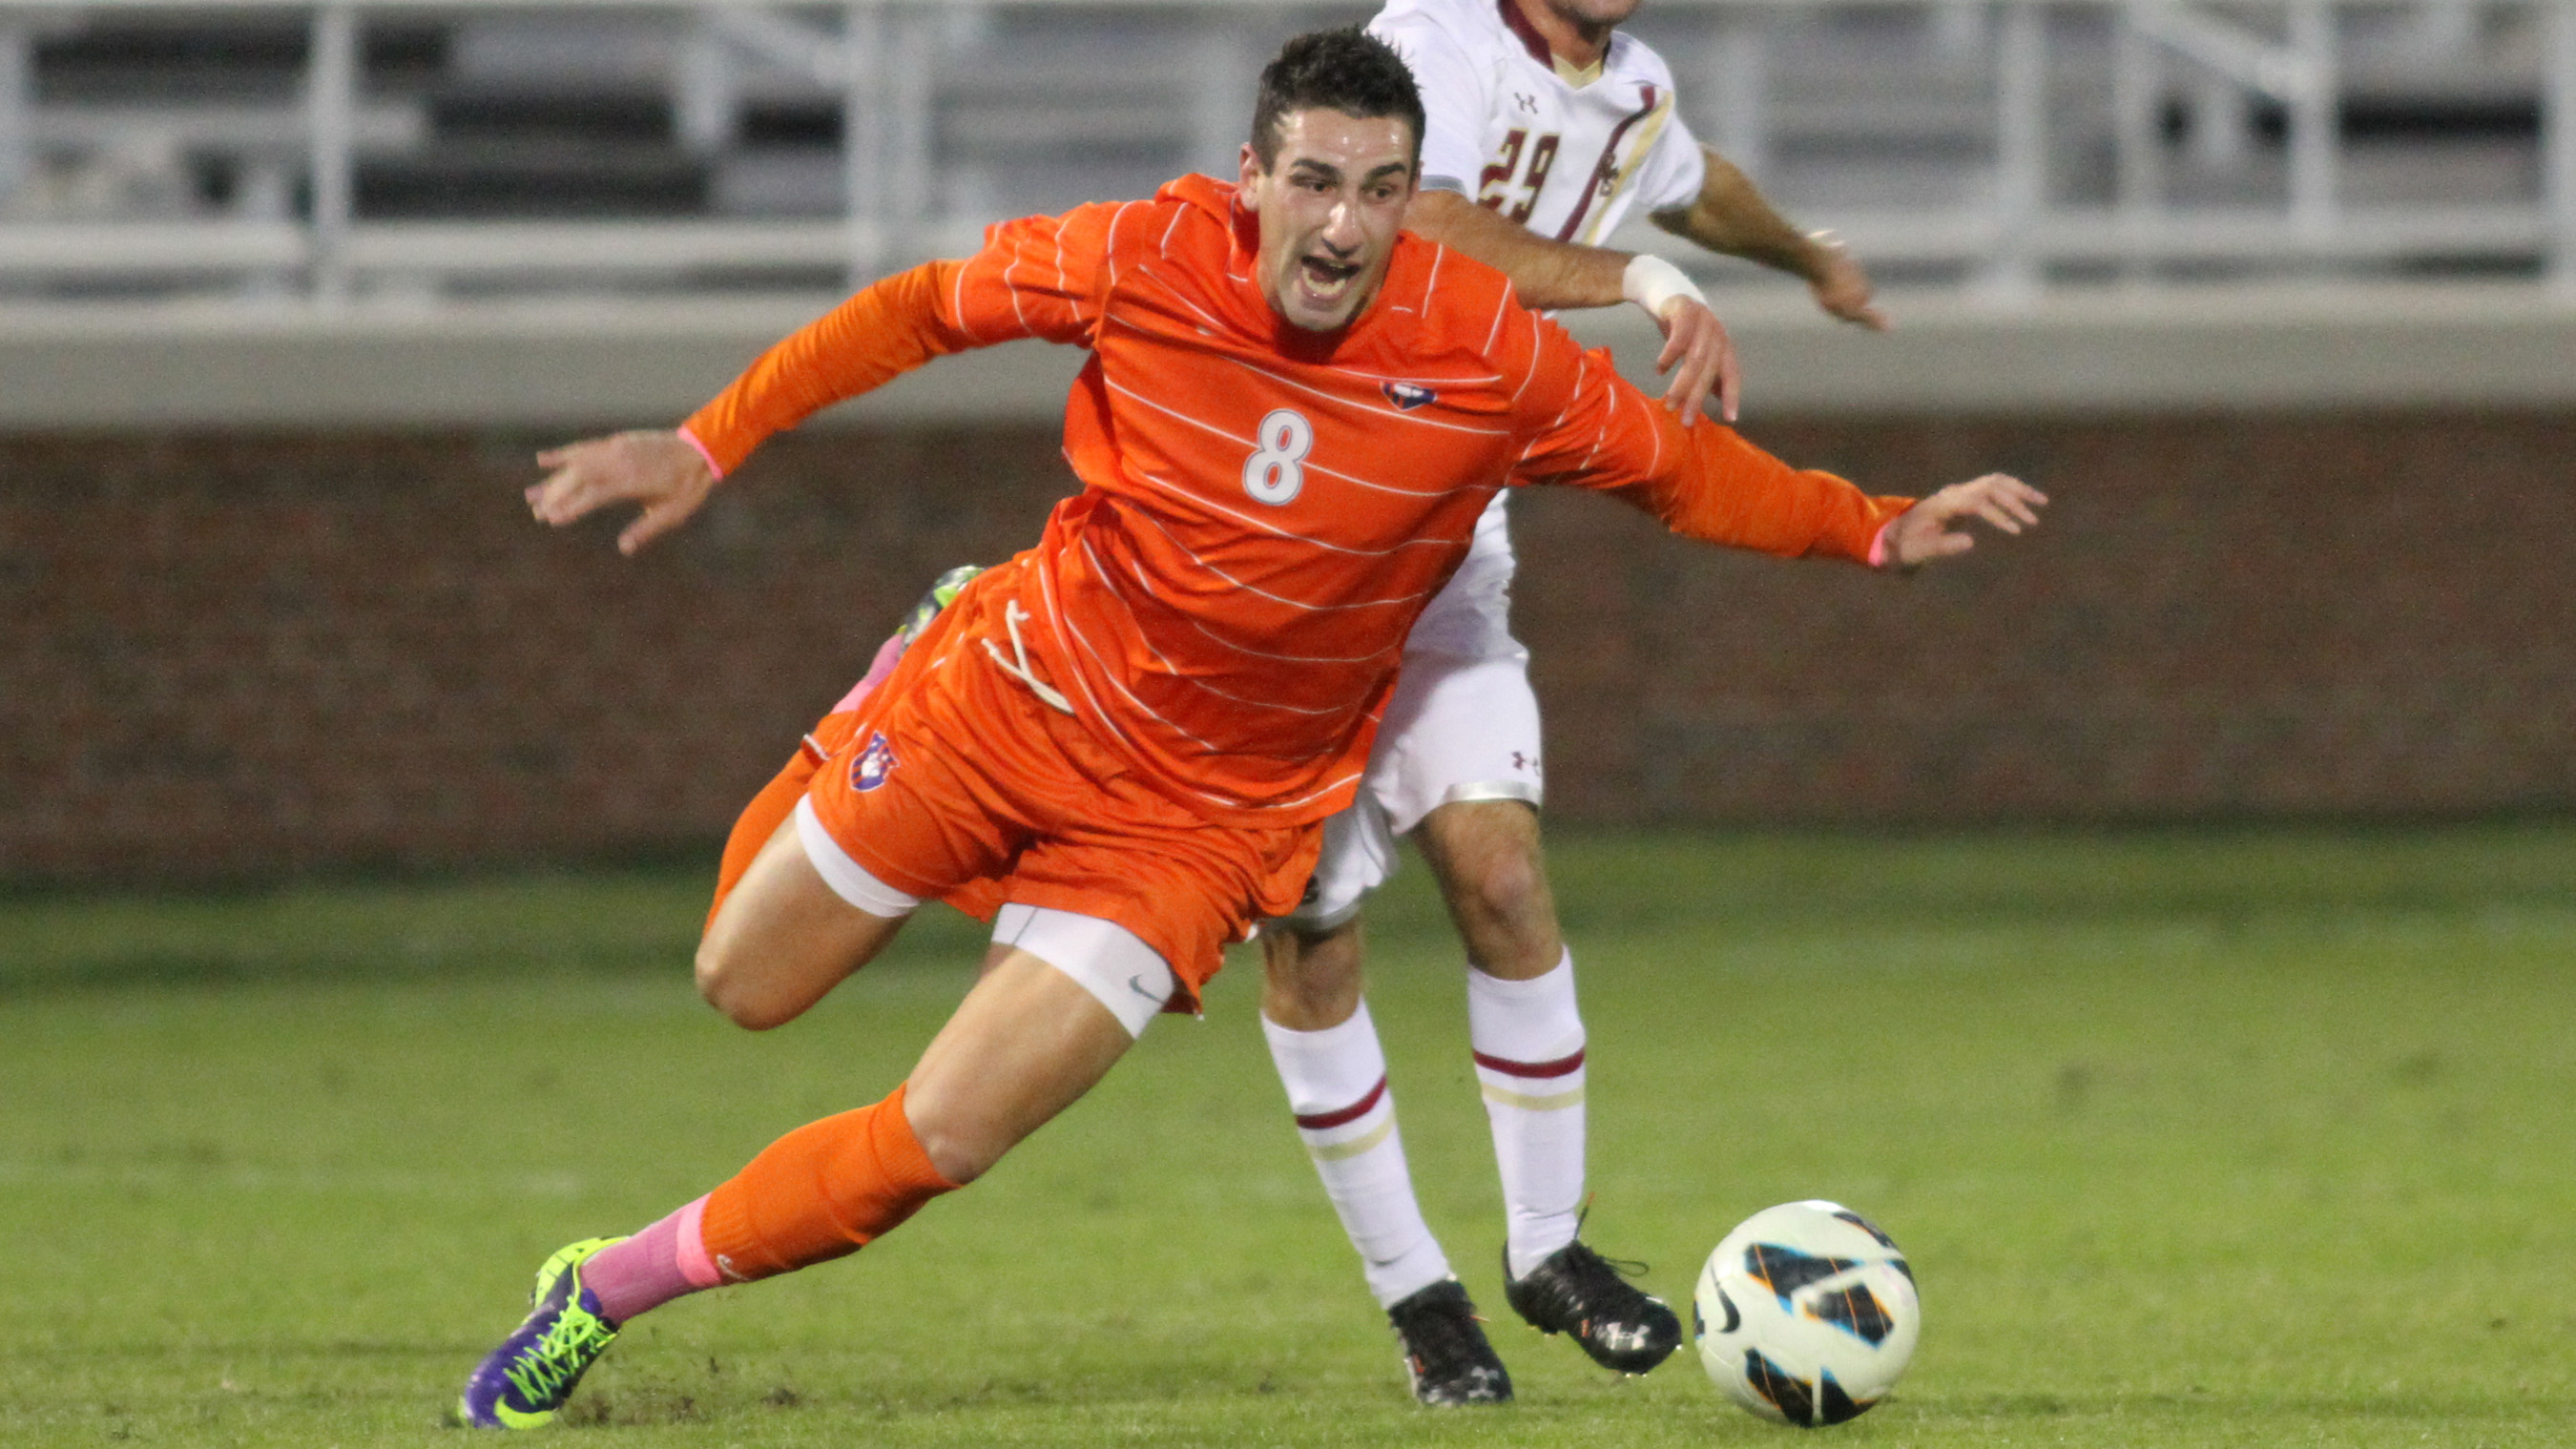 Clemson Will Play #9 North Carolina Tuesday Night in ACC Quarterfinals